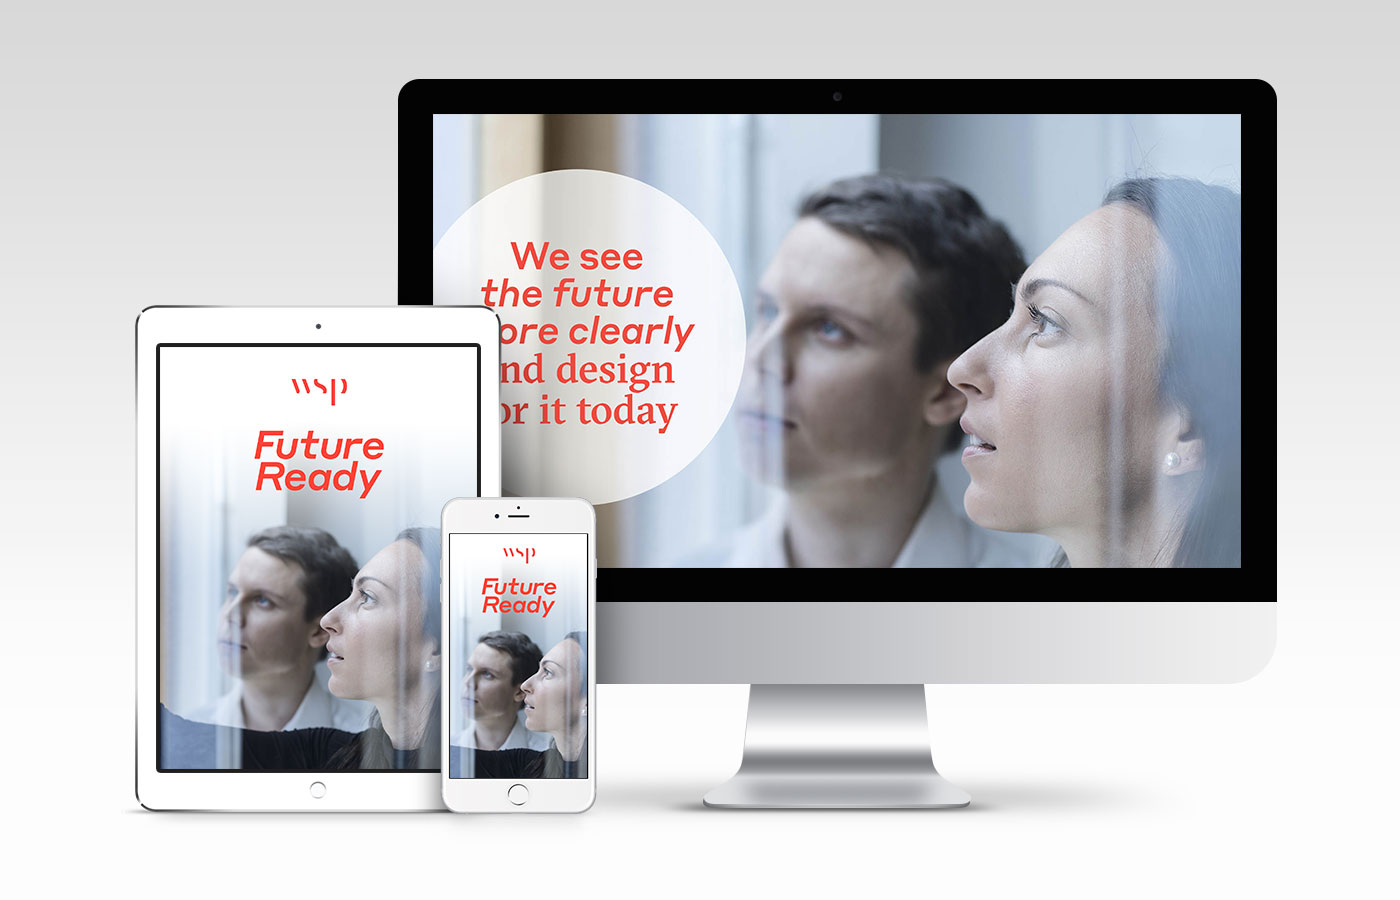 wsp_future_ready_digital